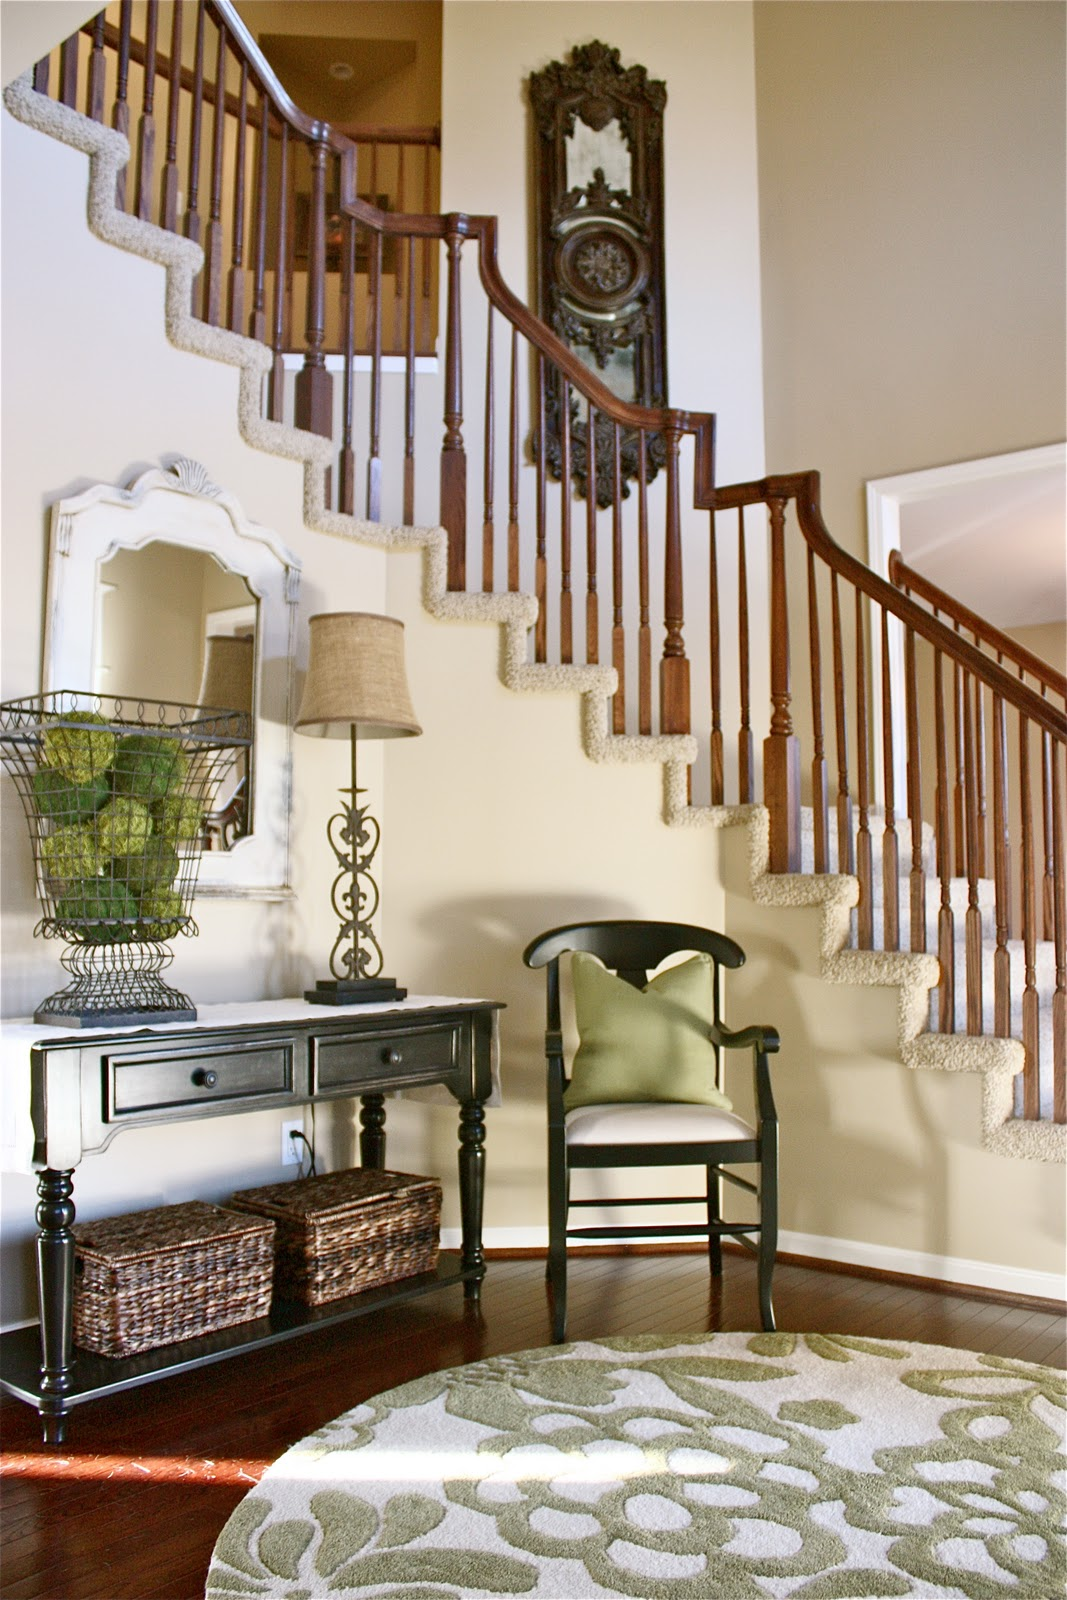 Foyer Entry : Entryway essentials lindsay hill interiors